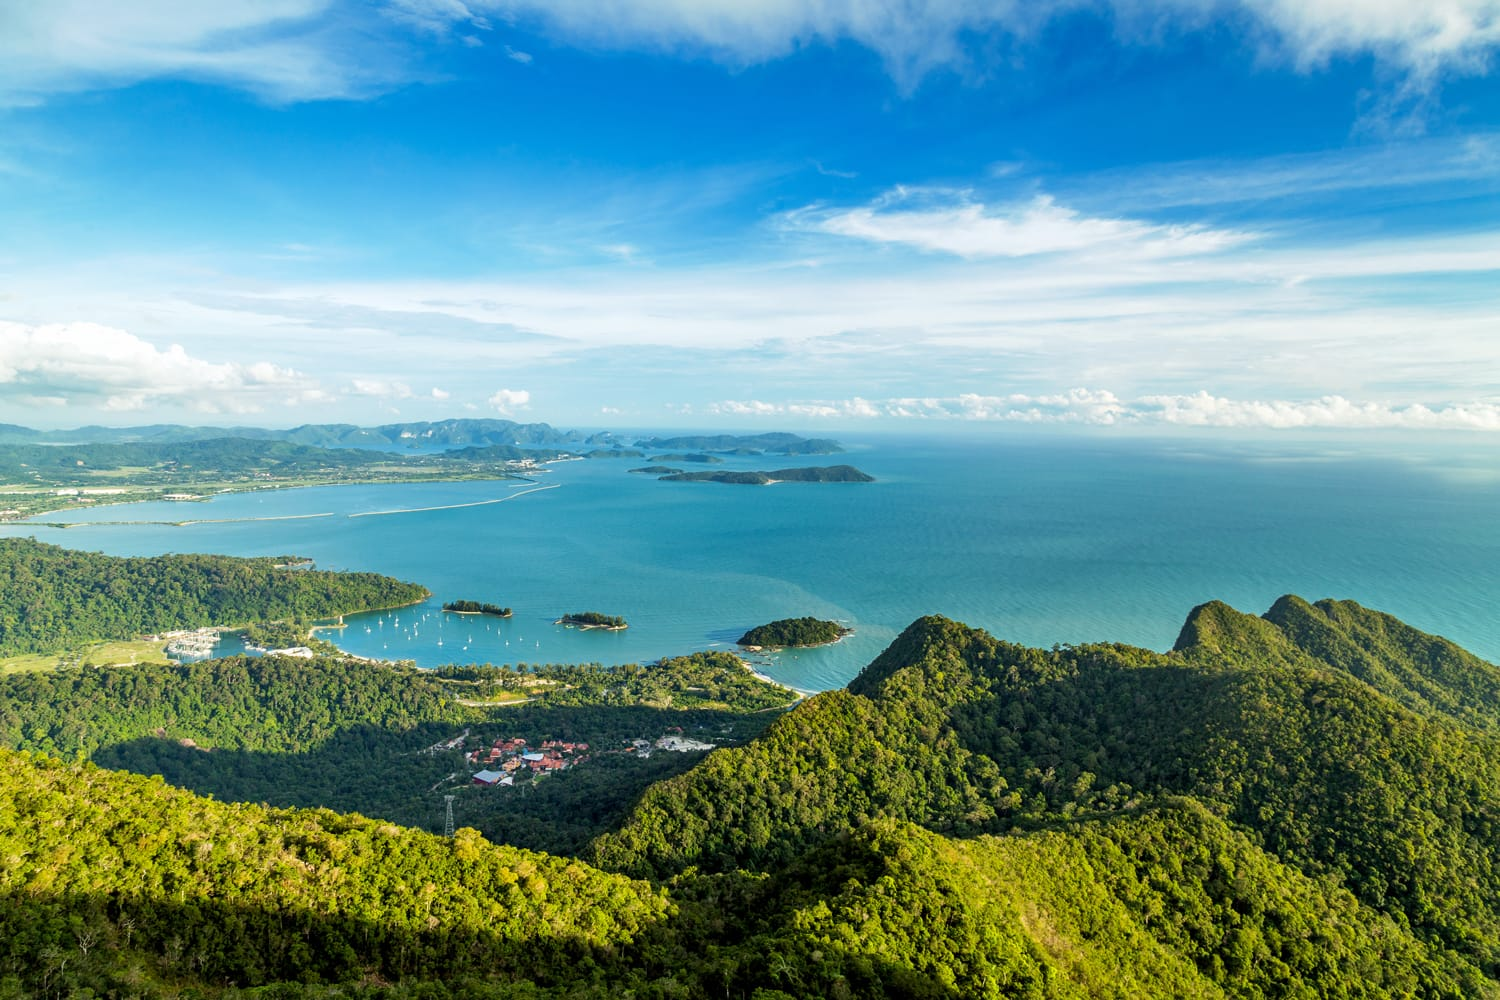 iew of tropical island Langkawi in Malaysia